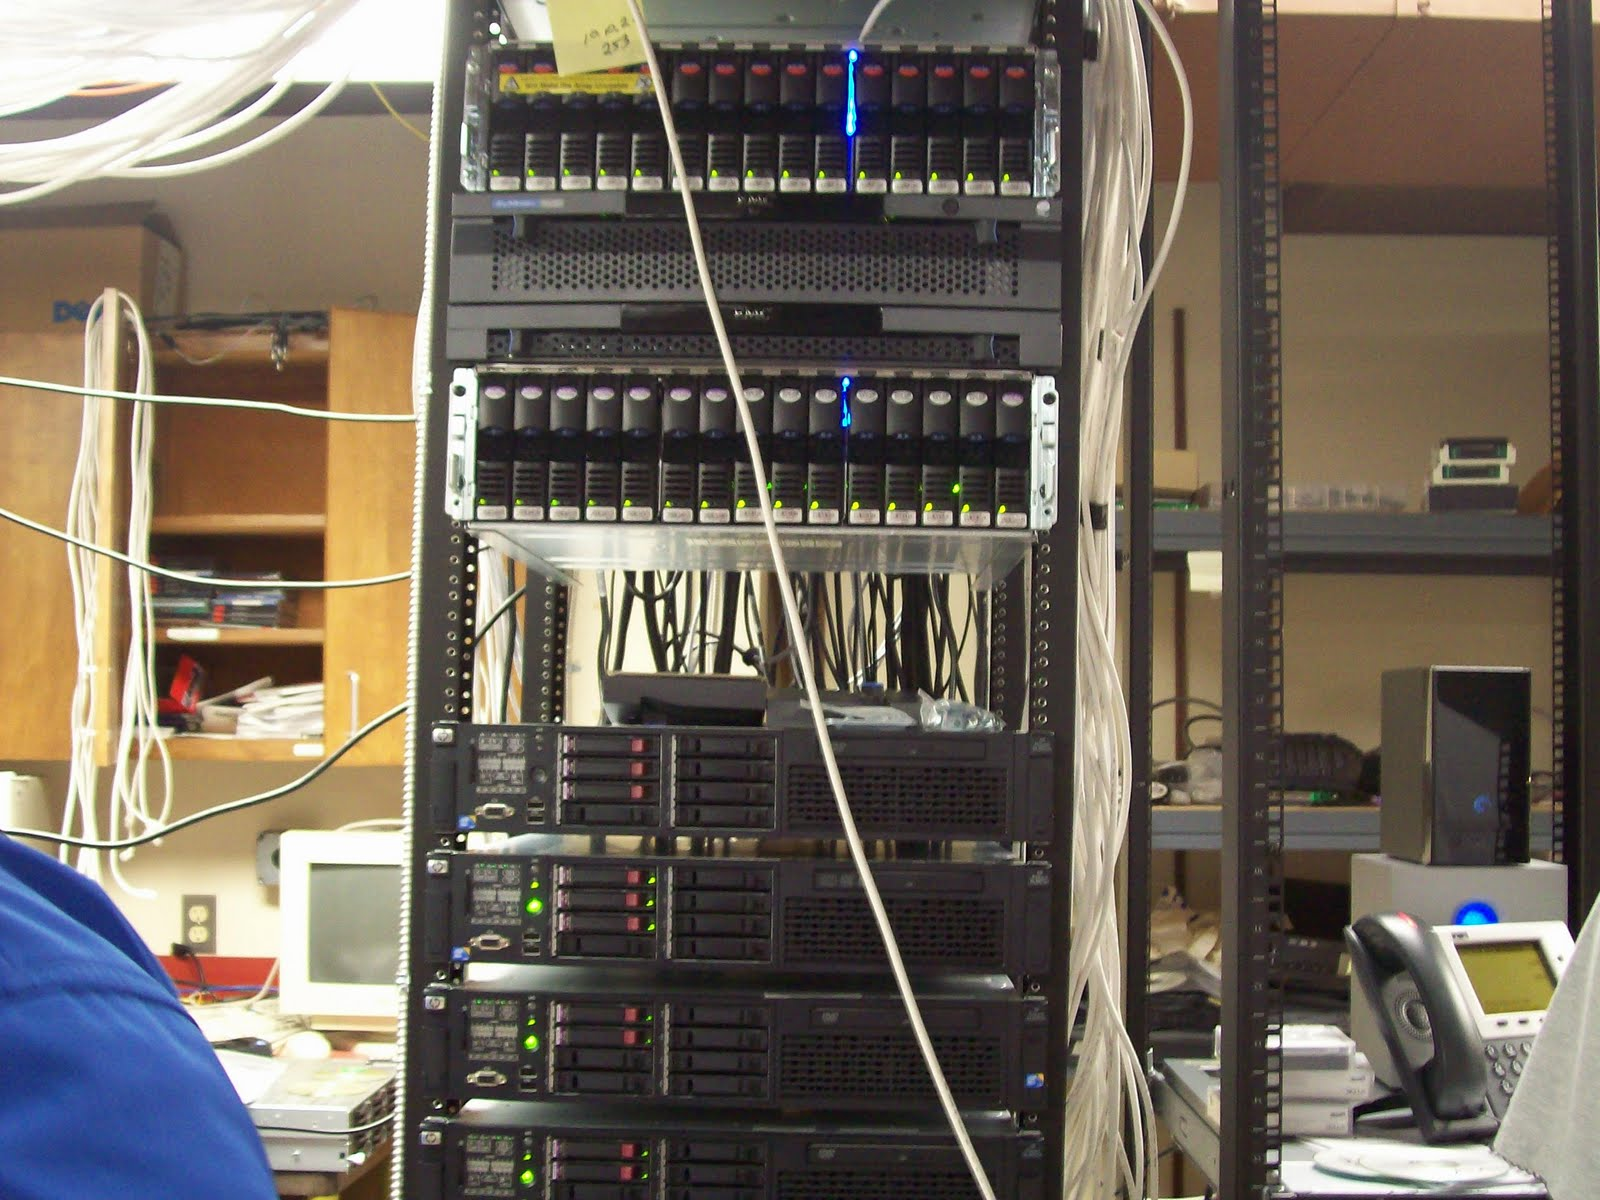 Net 125 Blog This Is My First Network Tour Wiring Closet Cooling W West Floor Cabling